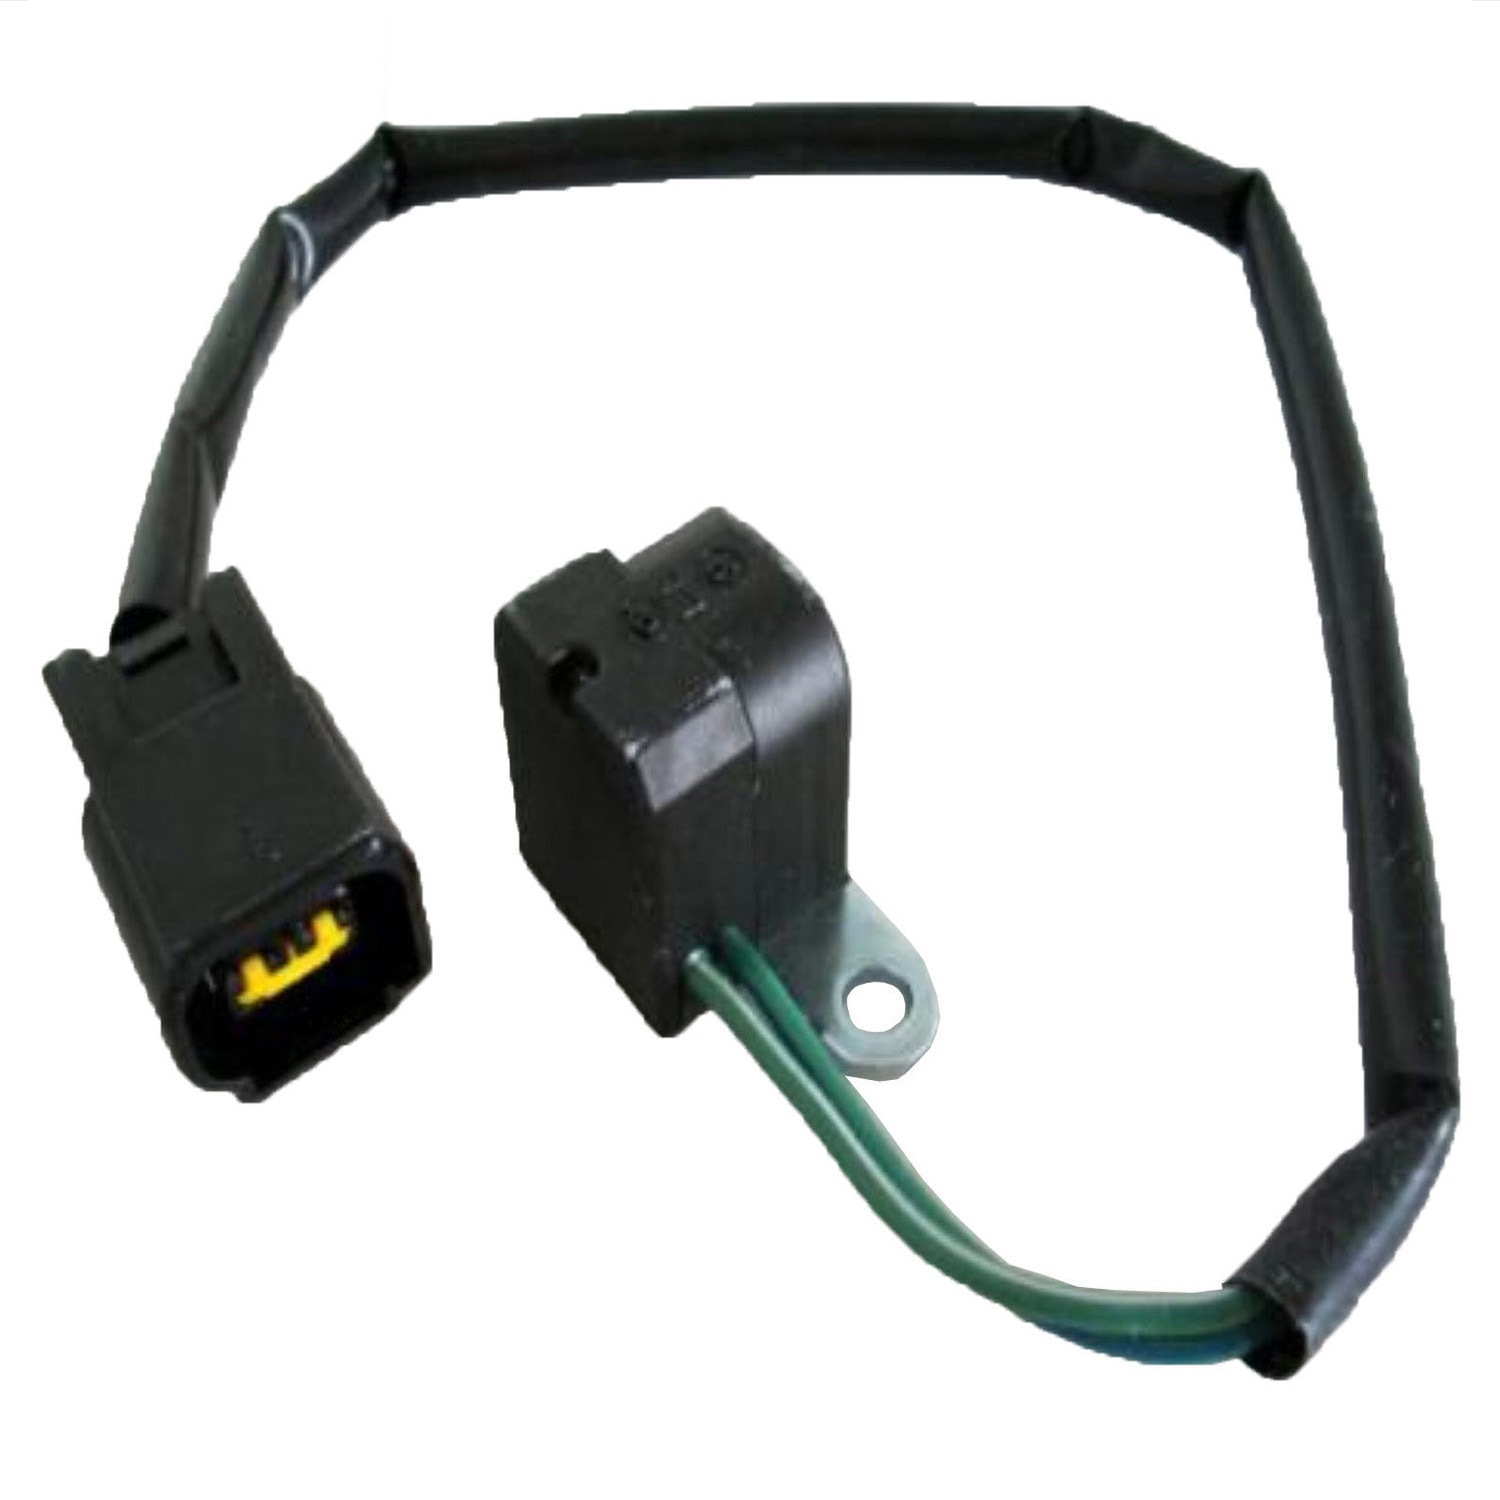 hight resolution of yamaha crank position sensor 150 175 200 225 250 300 hp hpdi ox66 picture 1 of 1